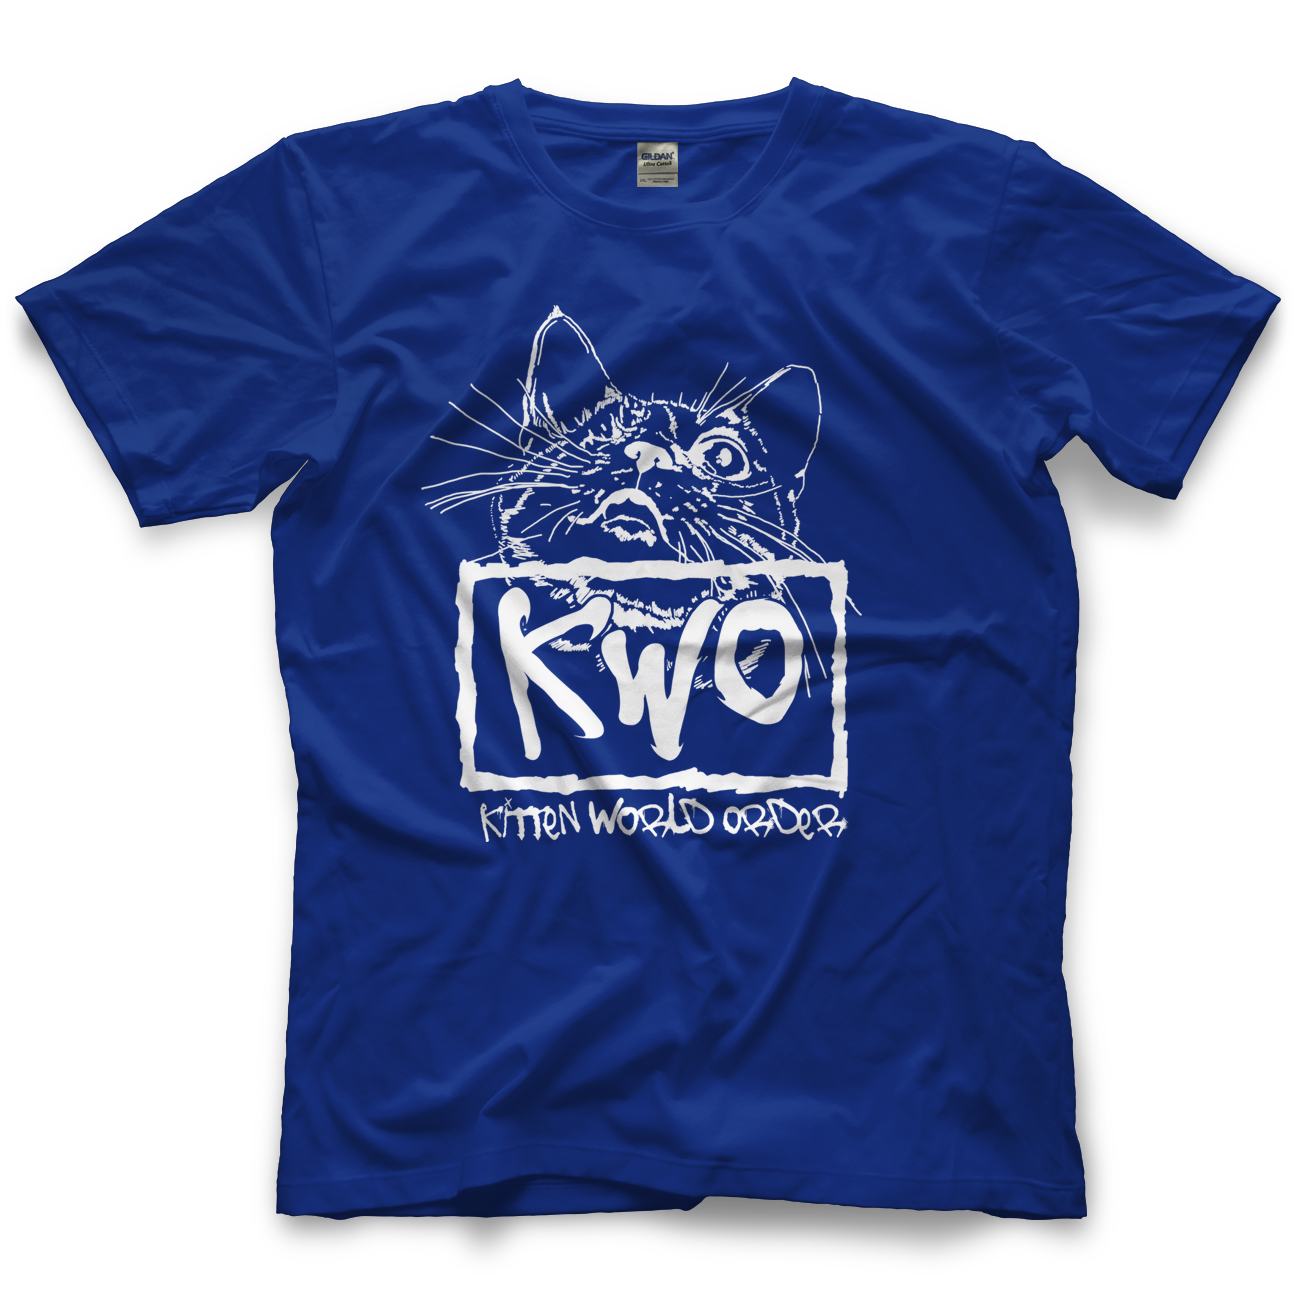 Stevie Richards kWo- Odin Edition T-shirt